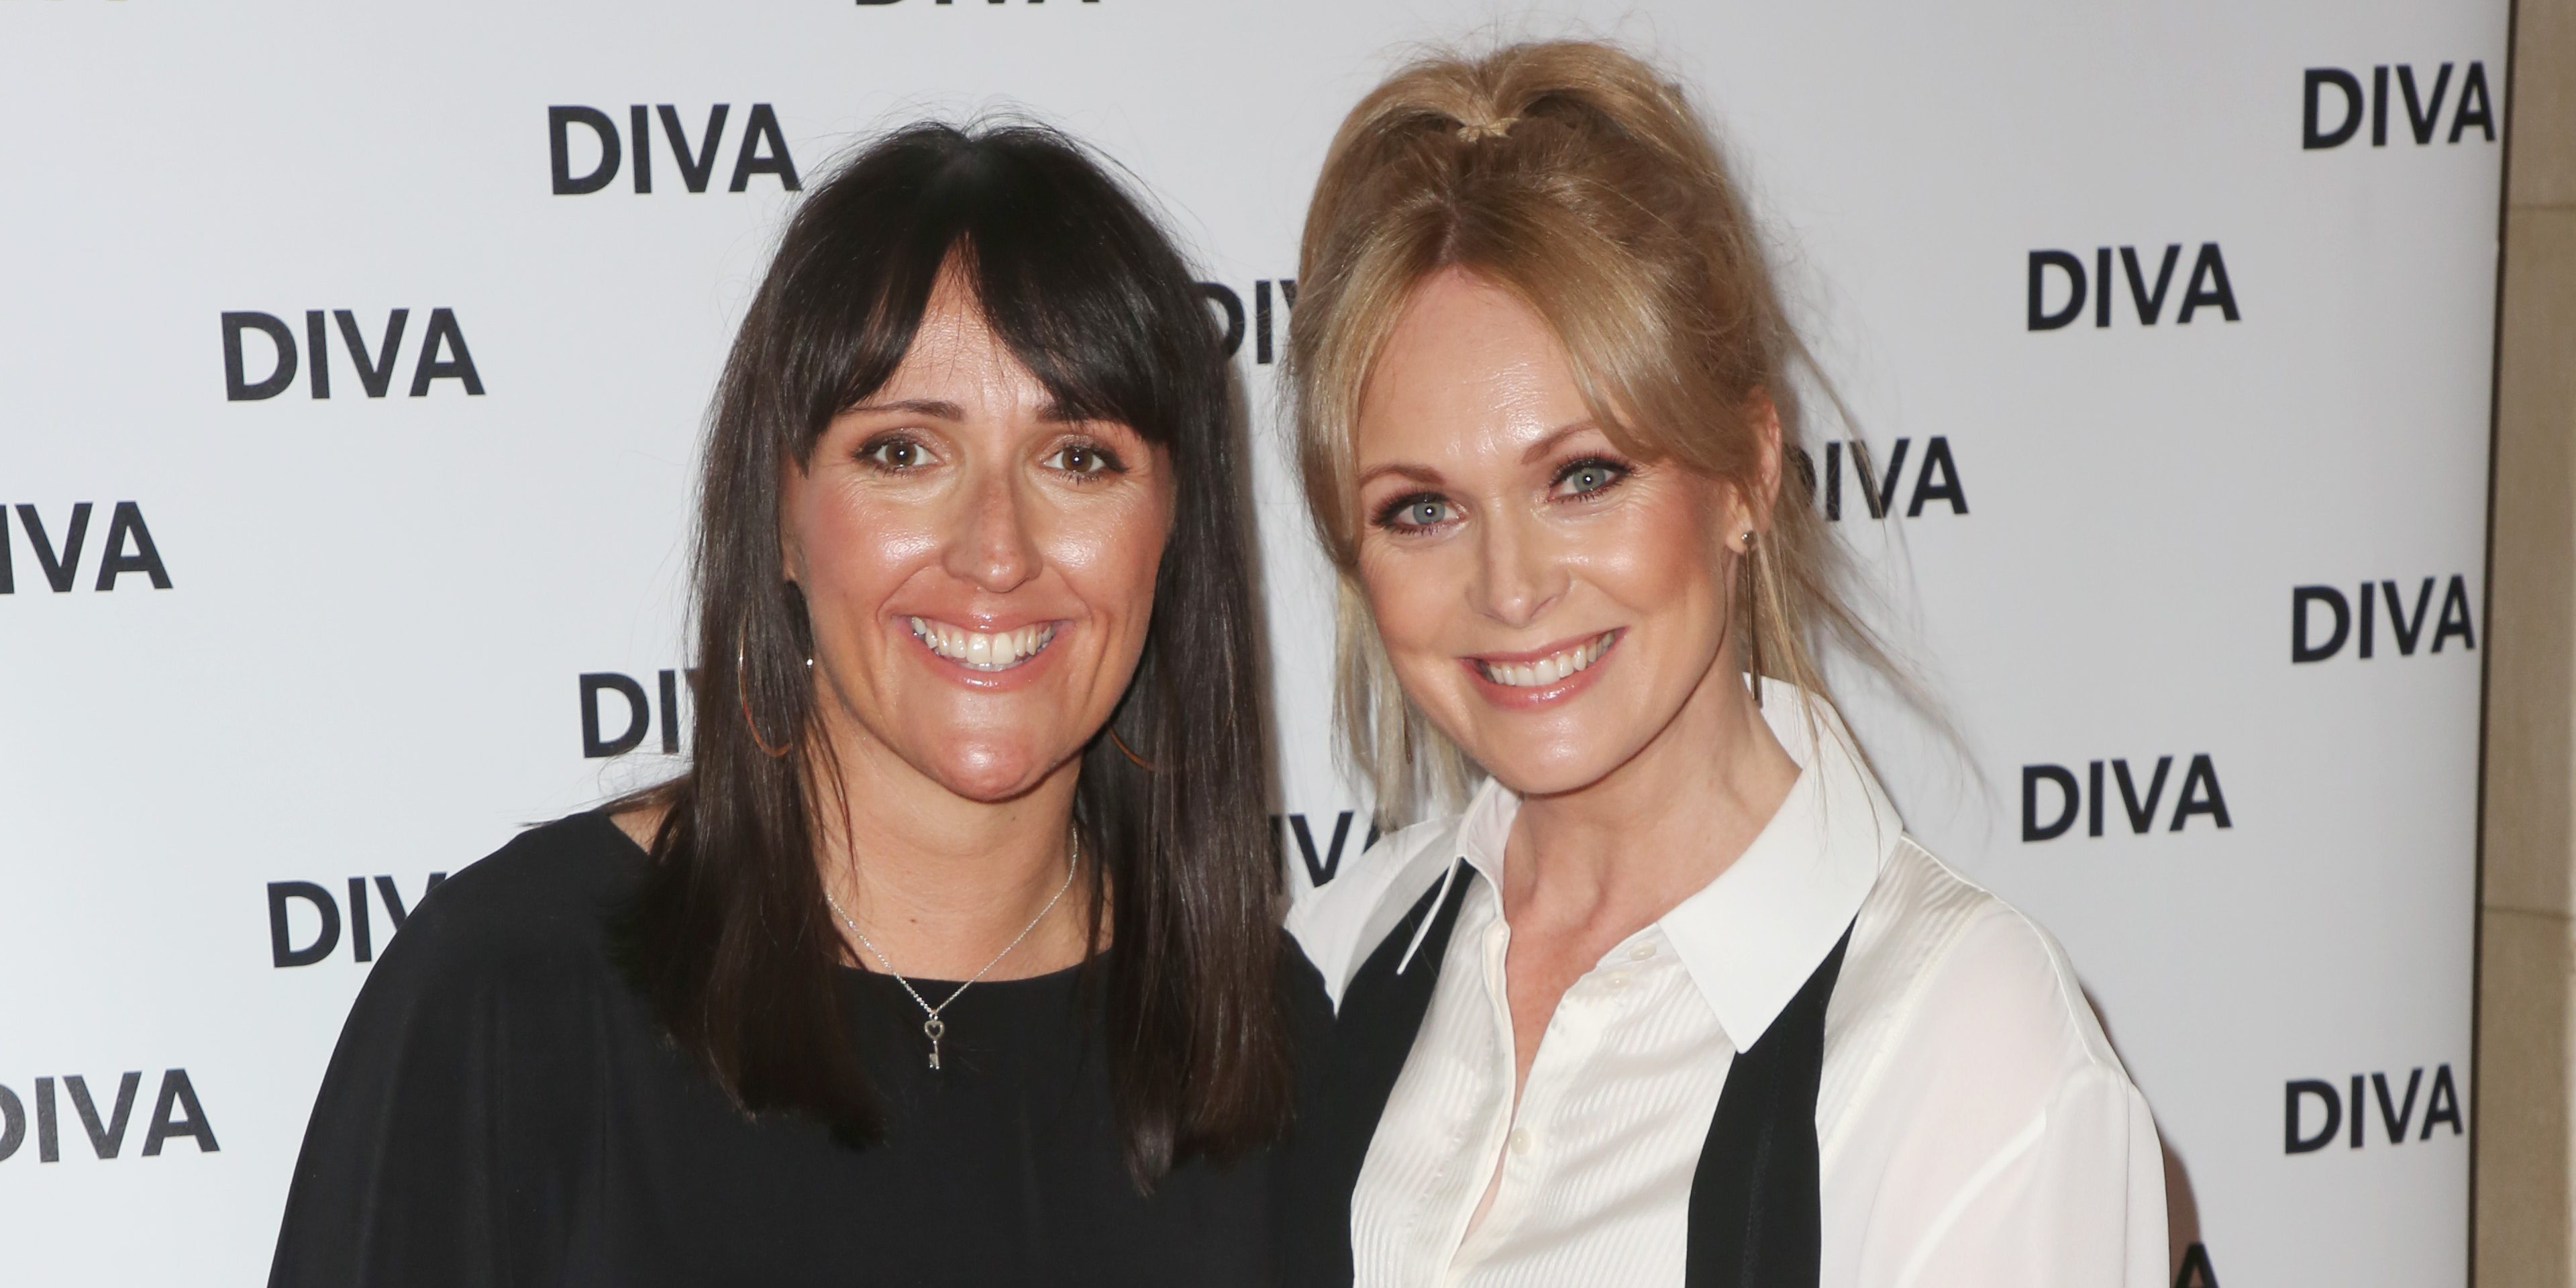 Emmerdale's Michelle Hardwick shares stunning picture with her new wife Kate Brooks at wedding celebrations